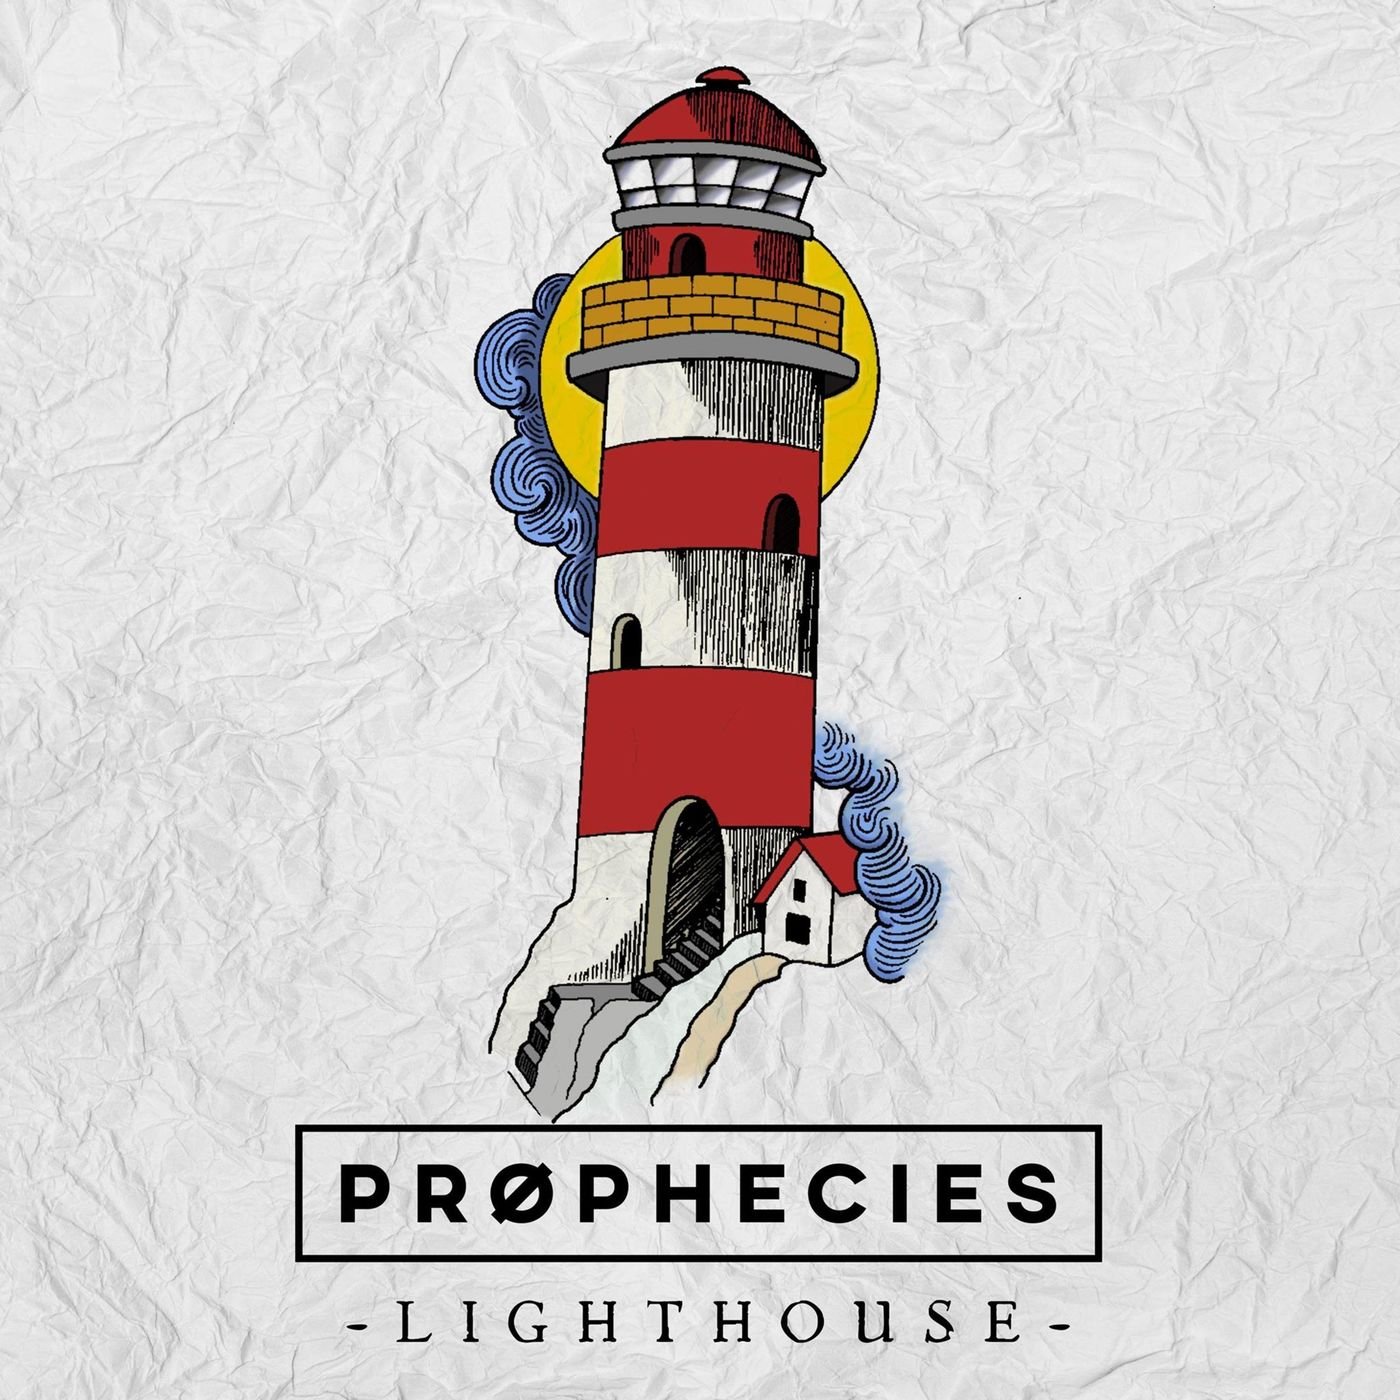 Prophecies - Lighthouse [single] (2019)